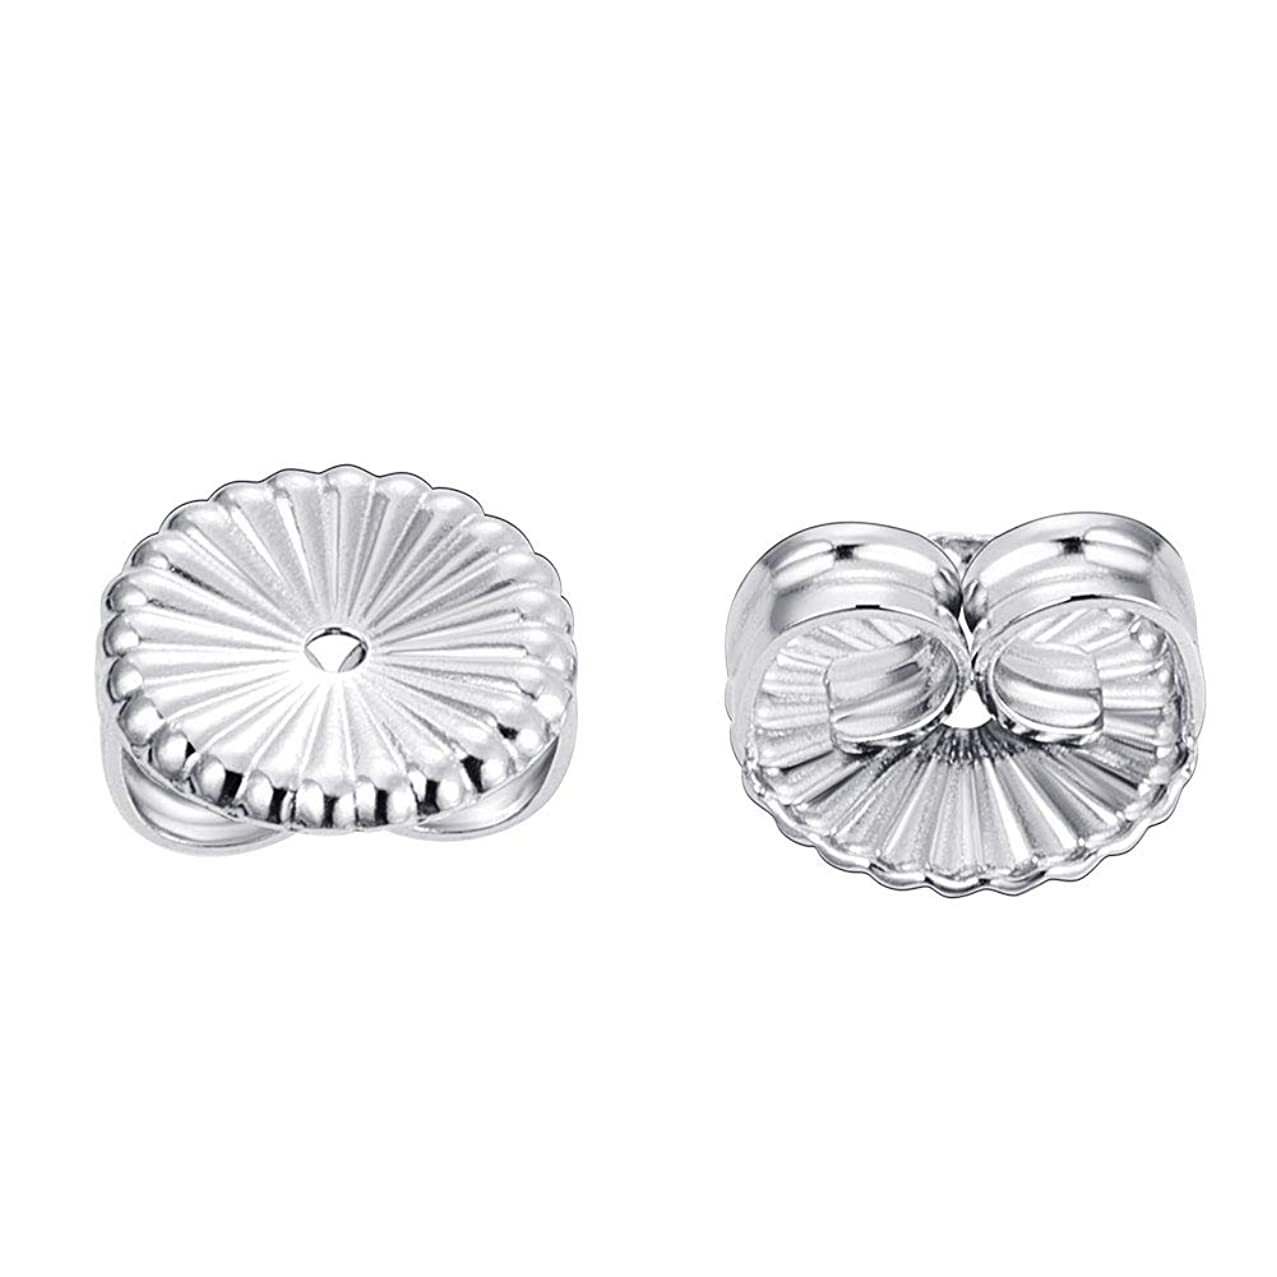 BENECREAT 3 Pairs Swirl Shape 925 Sterling Silver Replacement Earring Backs Stopper for Jewelry Findings(5.5x6.5x3.5mm)